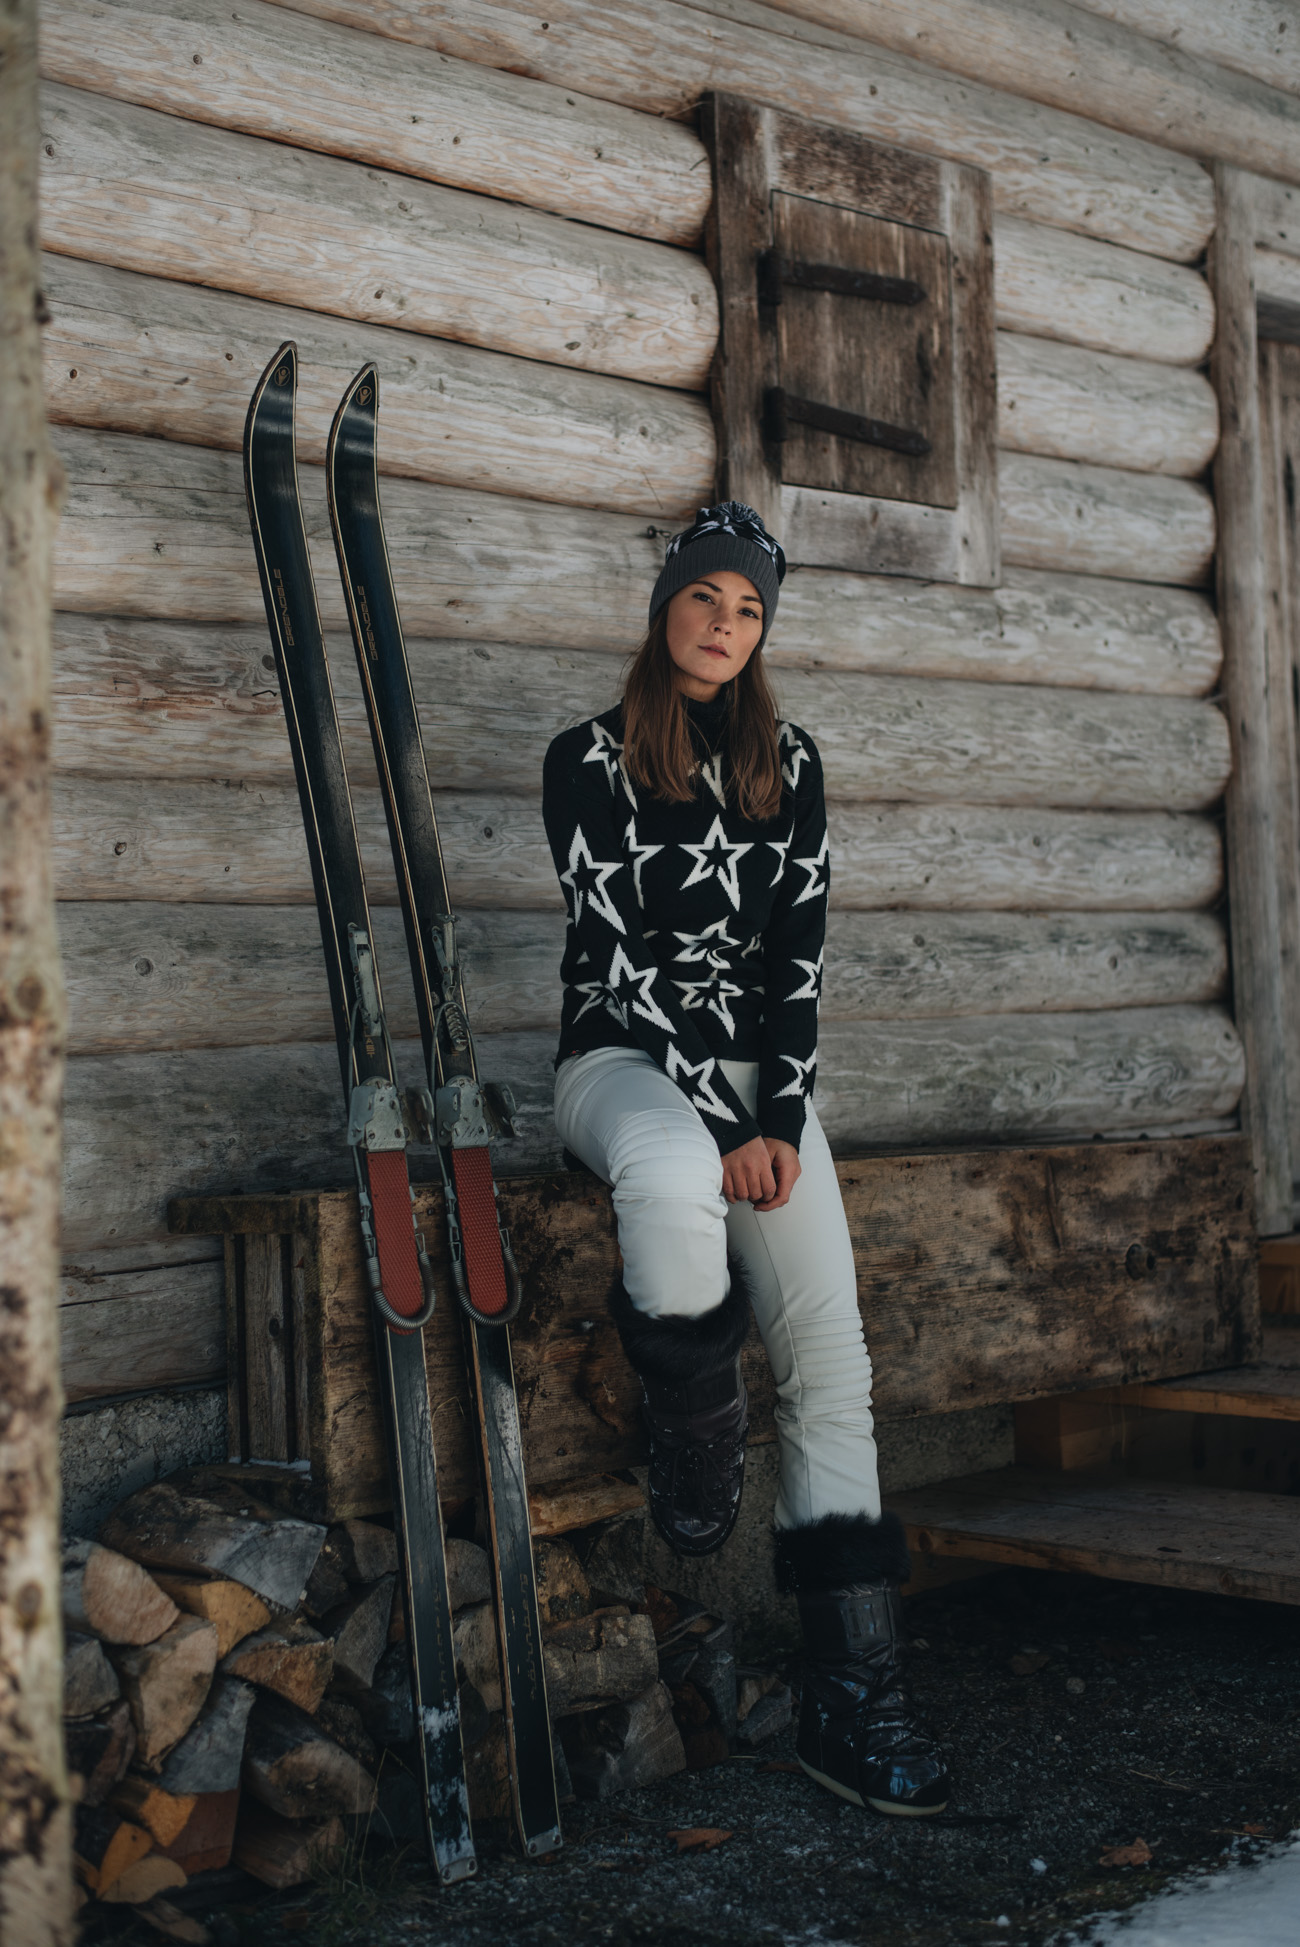 Fashion-editorial-outdoor-shooting-winter-fotoshooting-schnee-mytheresa-skit-edit-kampagne-blogger-nina-schwichtenberg-fashionbloggerin-deutschland-münchen-fashiioncarpet